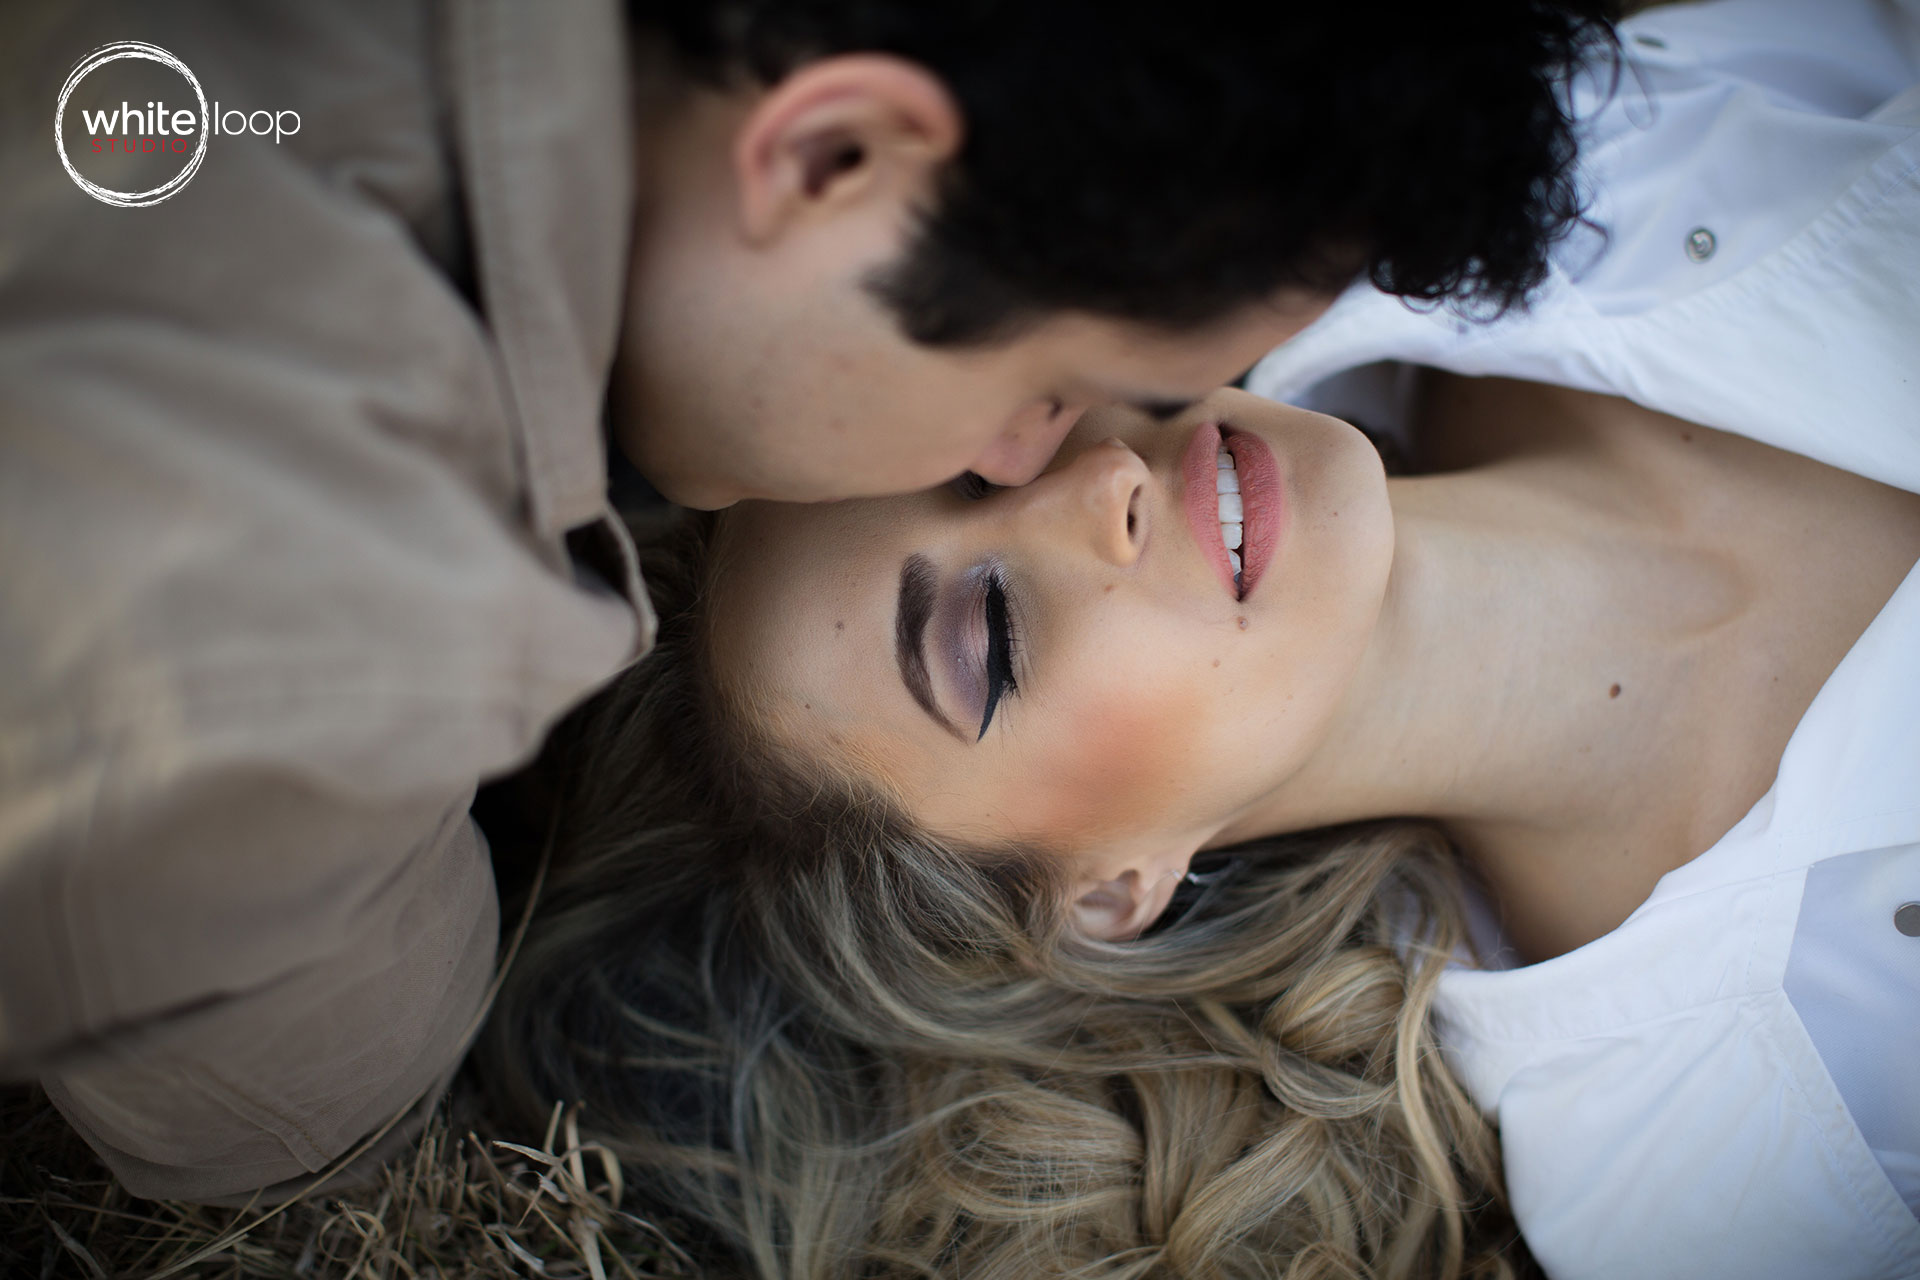 The groom kissing the bride on the forehead lying on grass, enjoying the moment with eyes closed